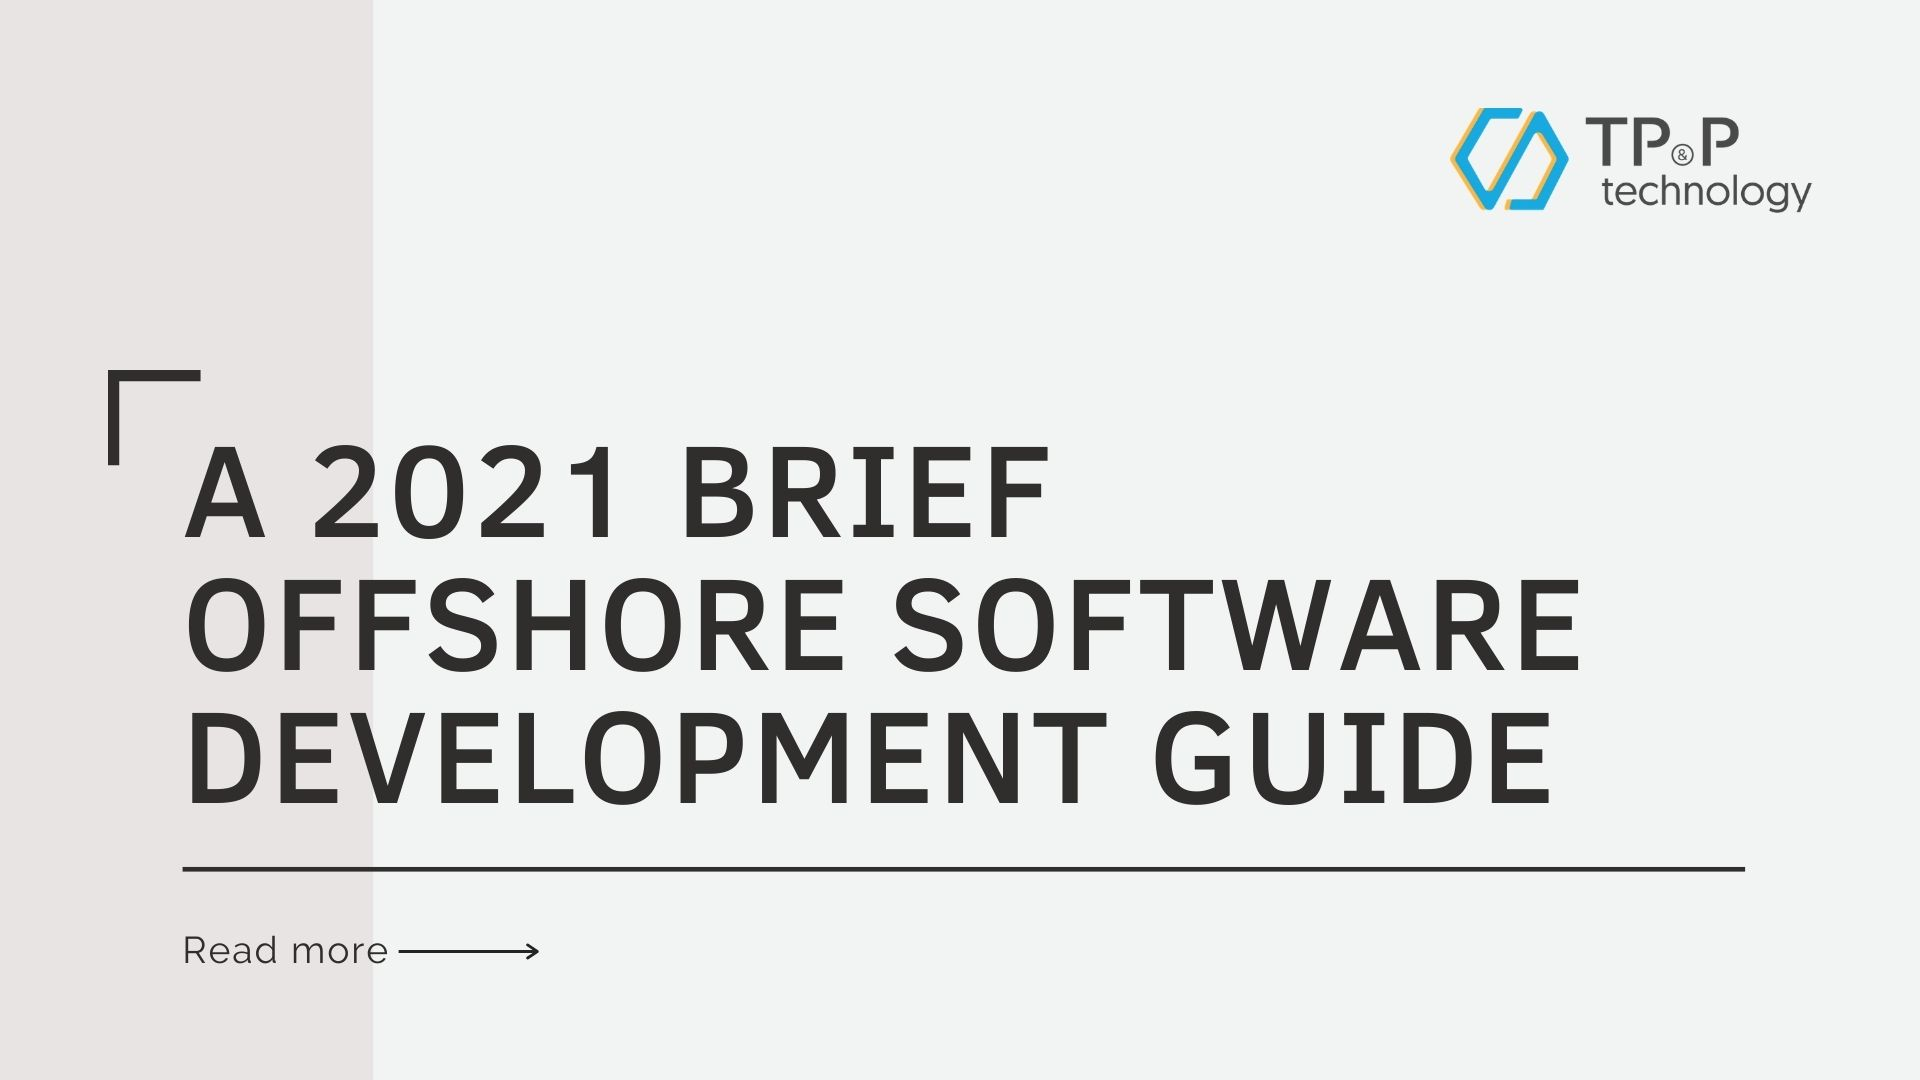 A 2021 Brief Offshore Software Development Guide